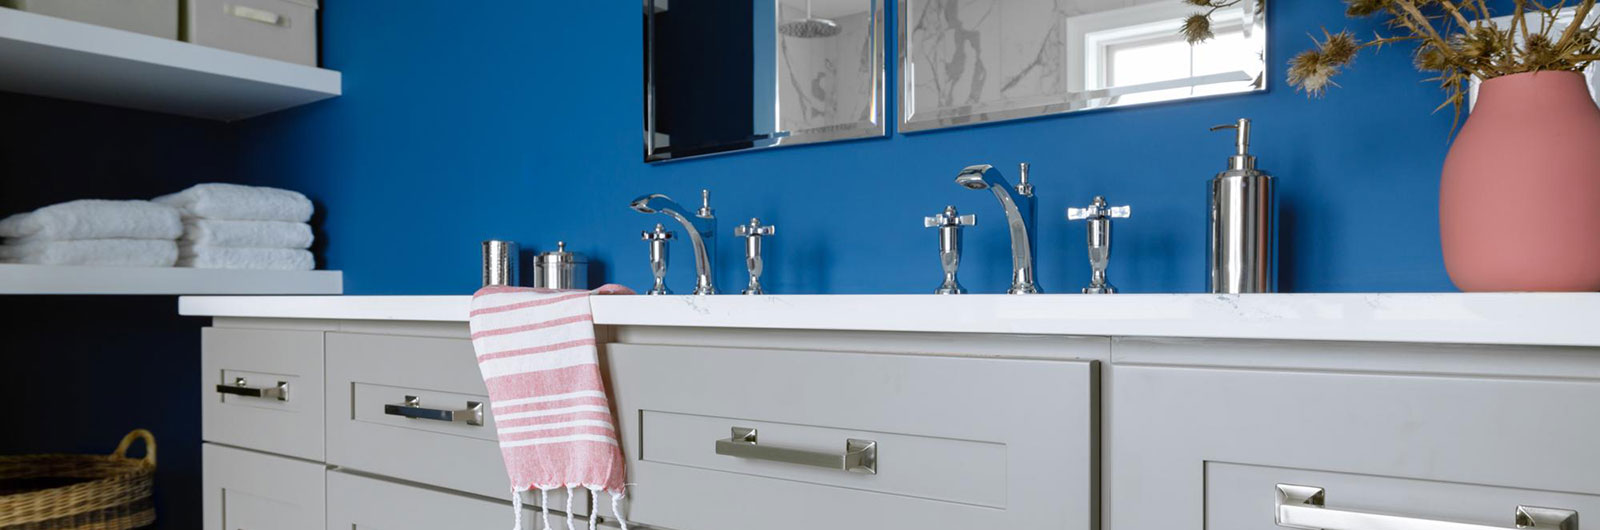 Two modern, chrome bathroom faucets on double sink vanity with dark sky blue wall